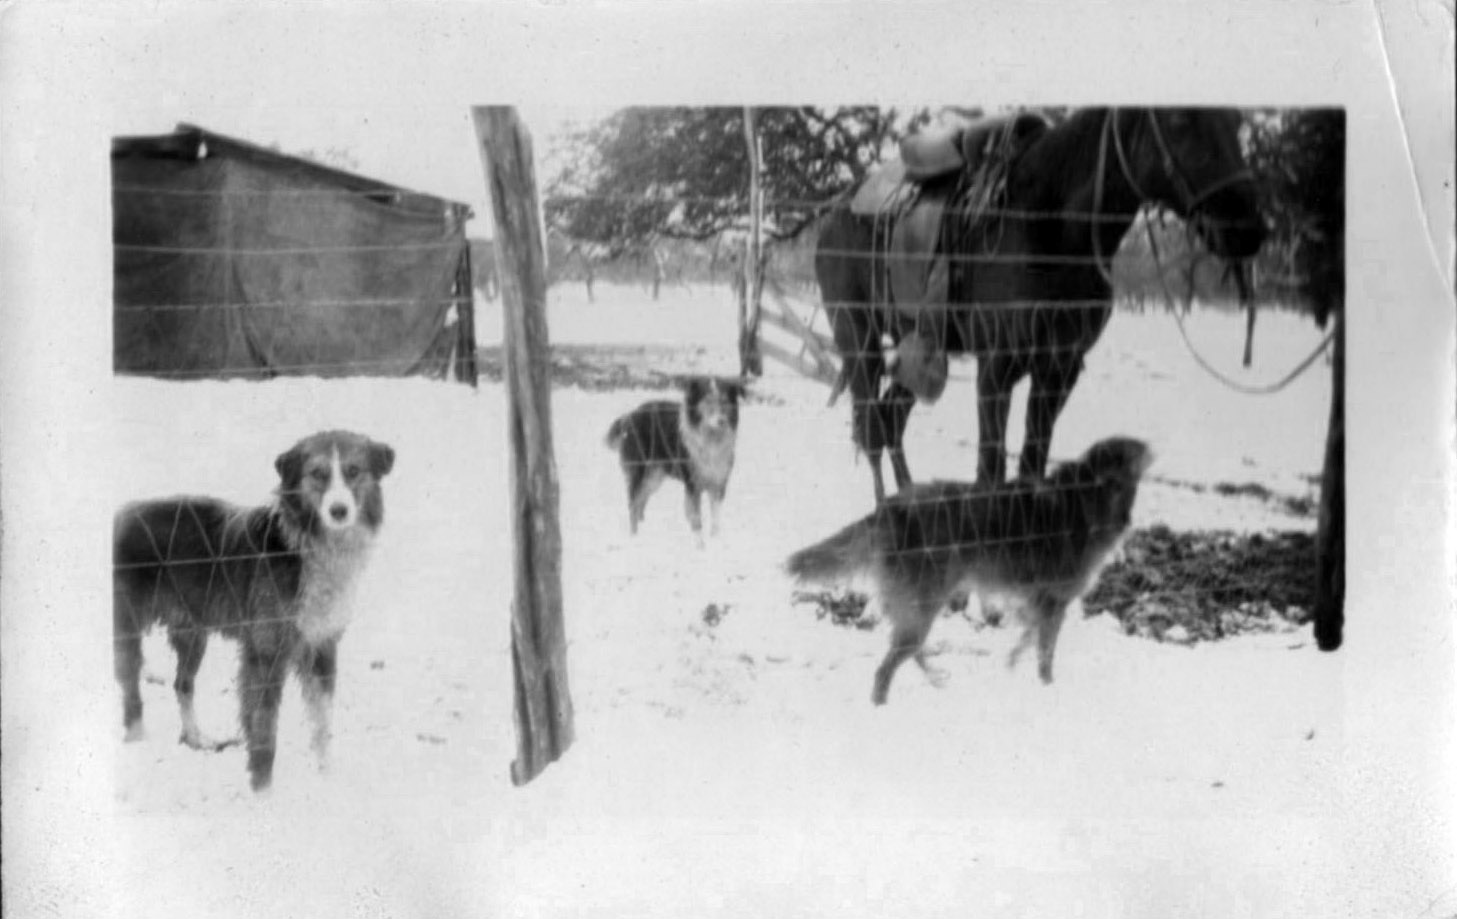 Dogs and horse in snow